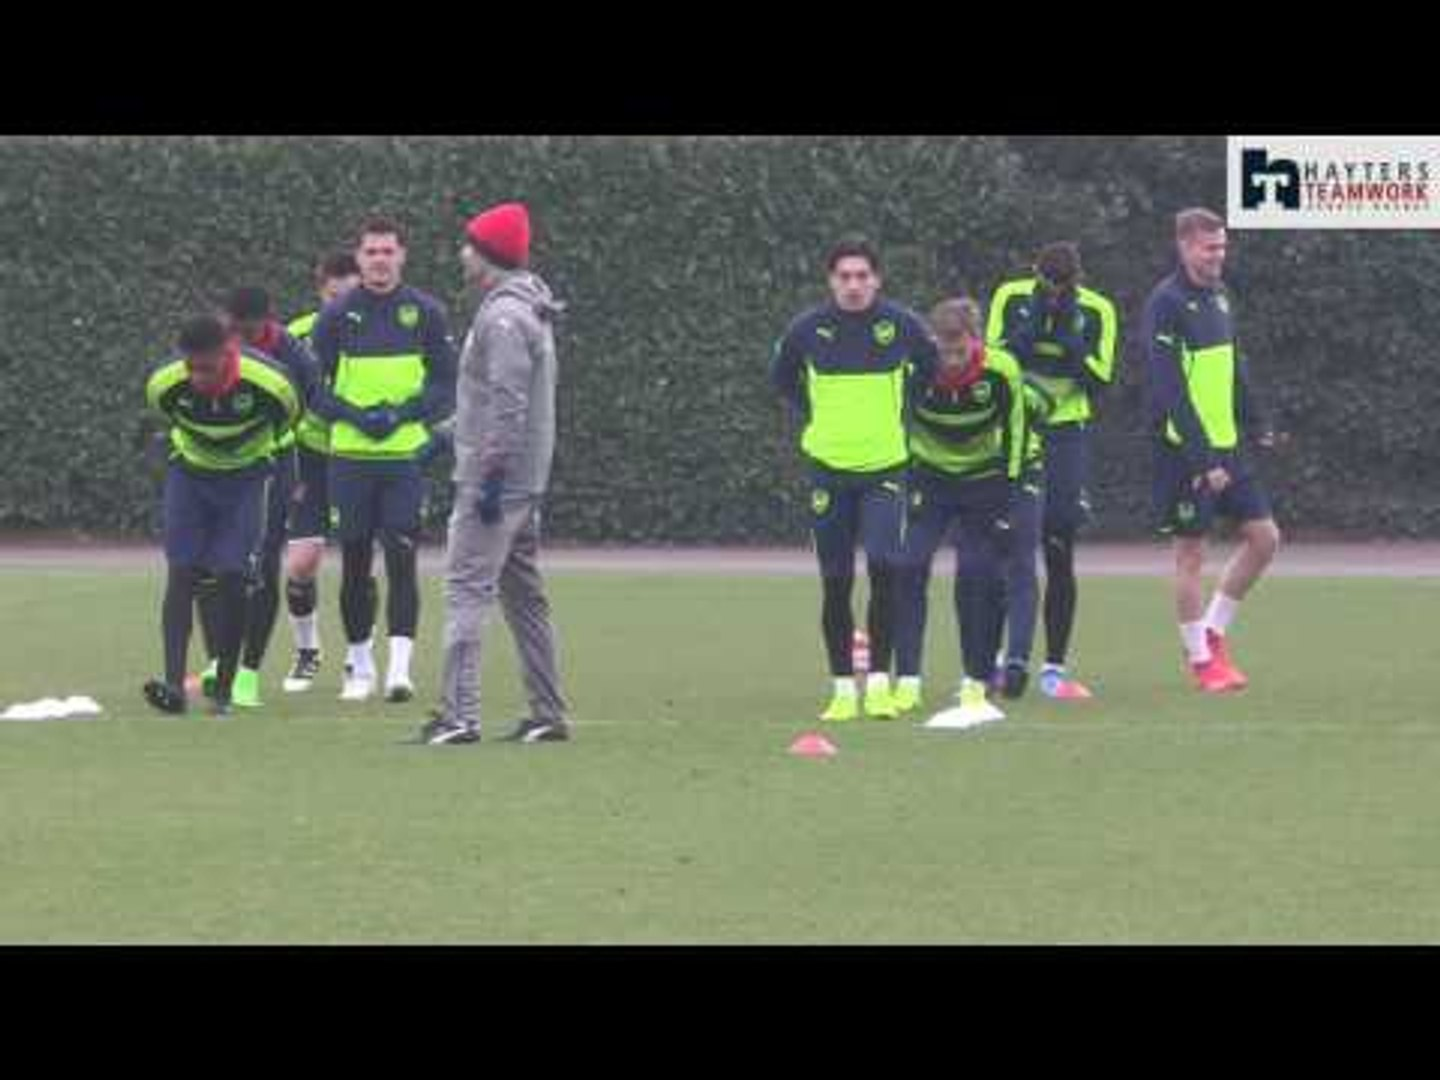 Sanogo trains alone as Arsenal get ready for Bayern